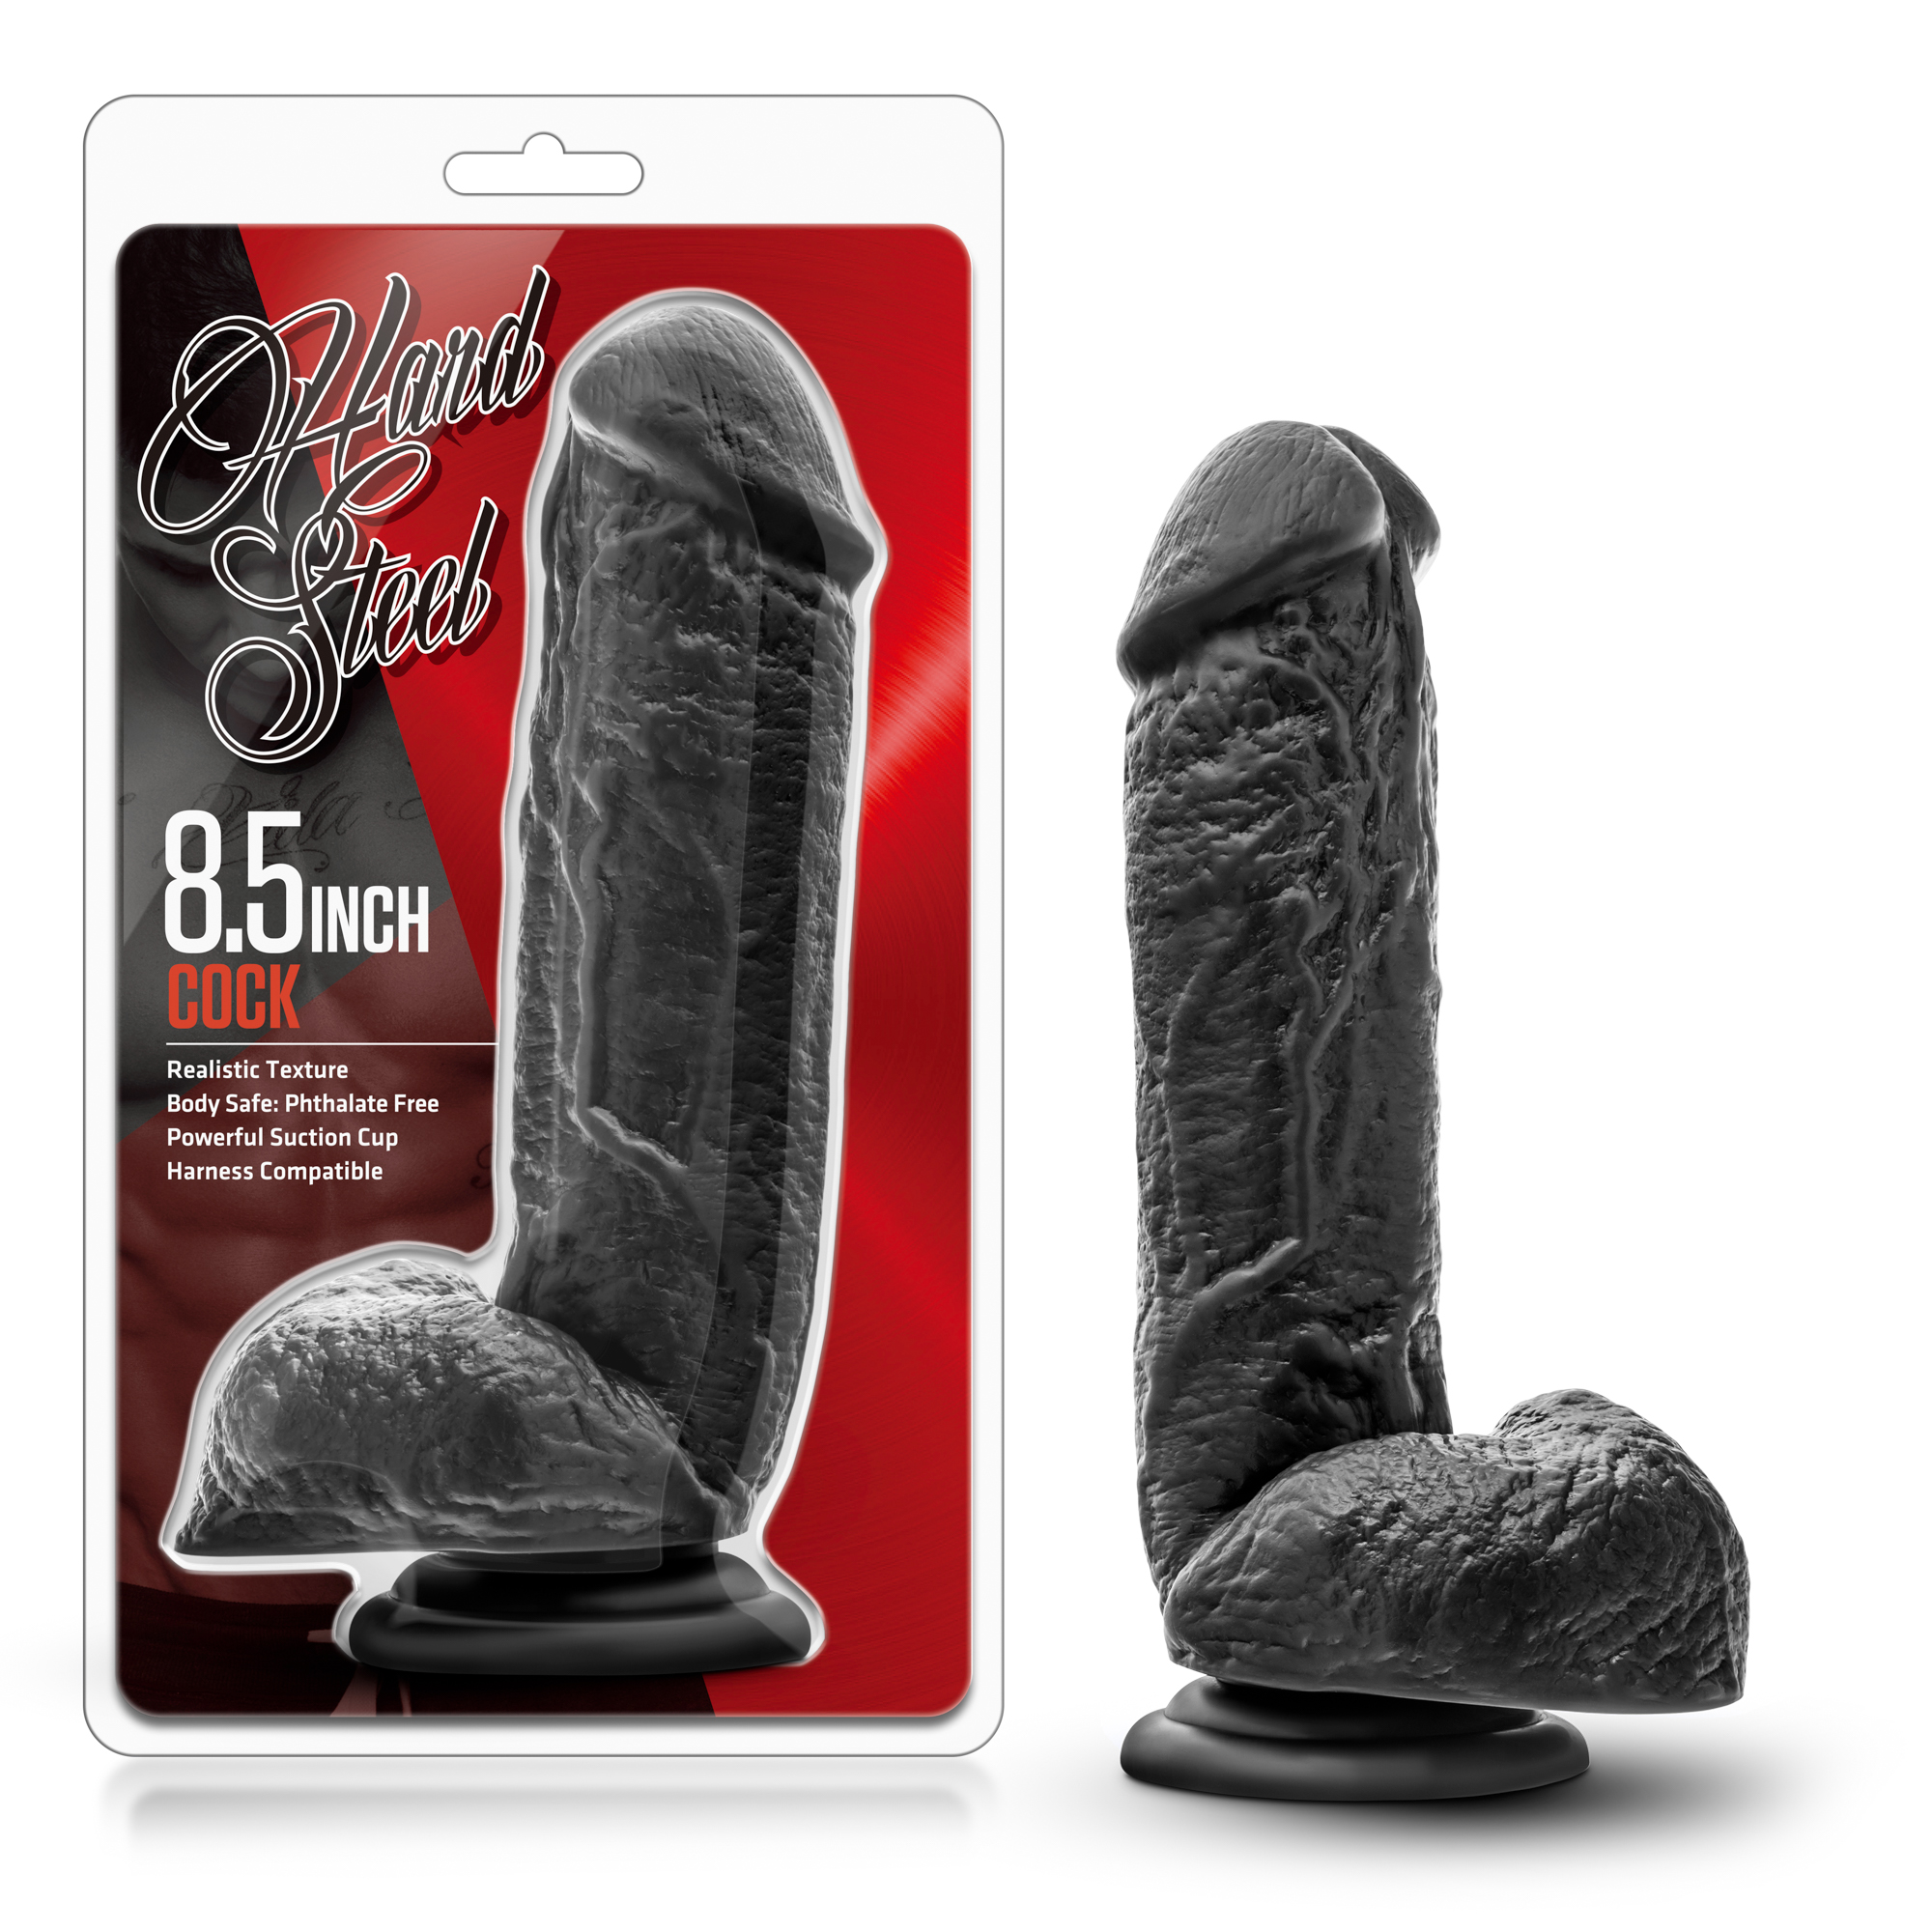 Hard Steel - 8.5 inch Cock - black